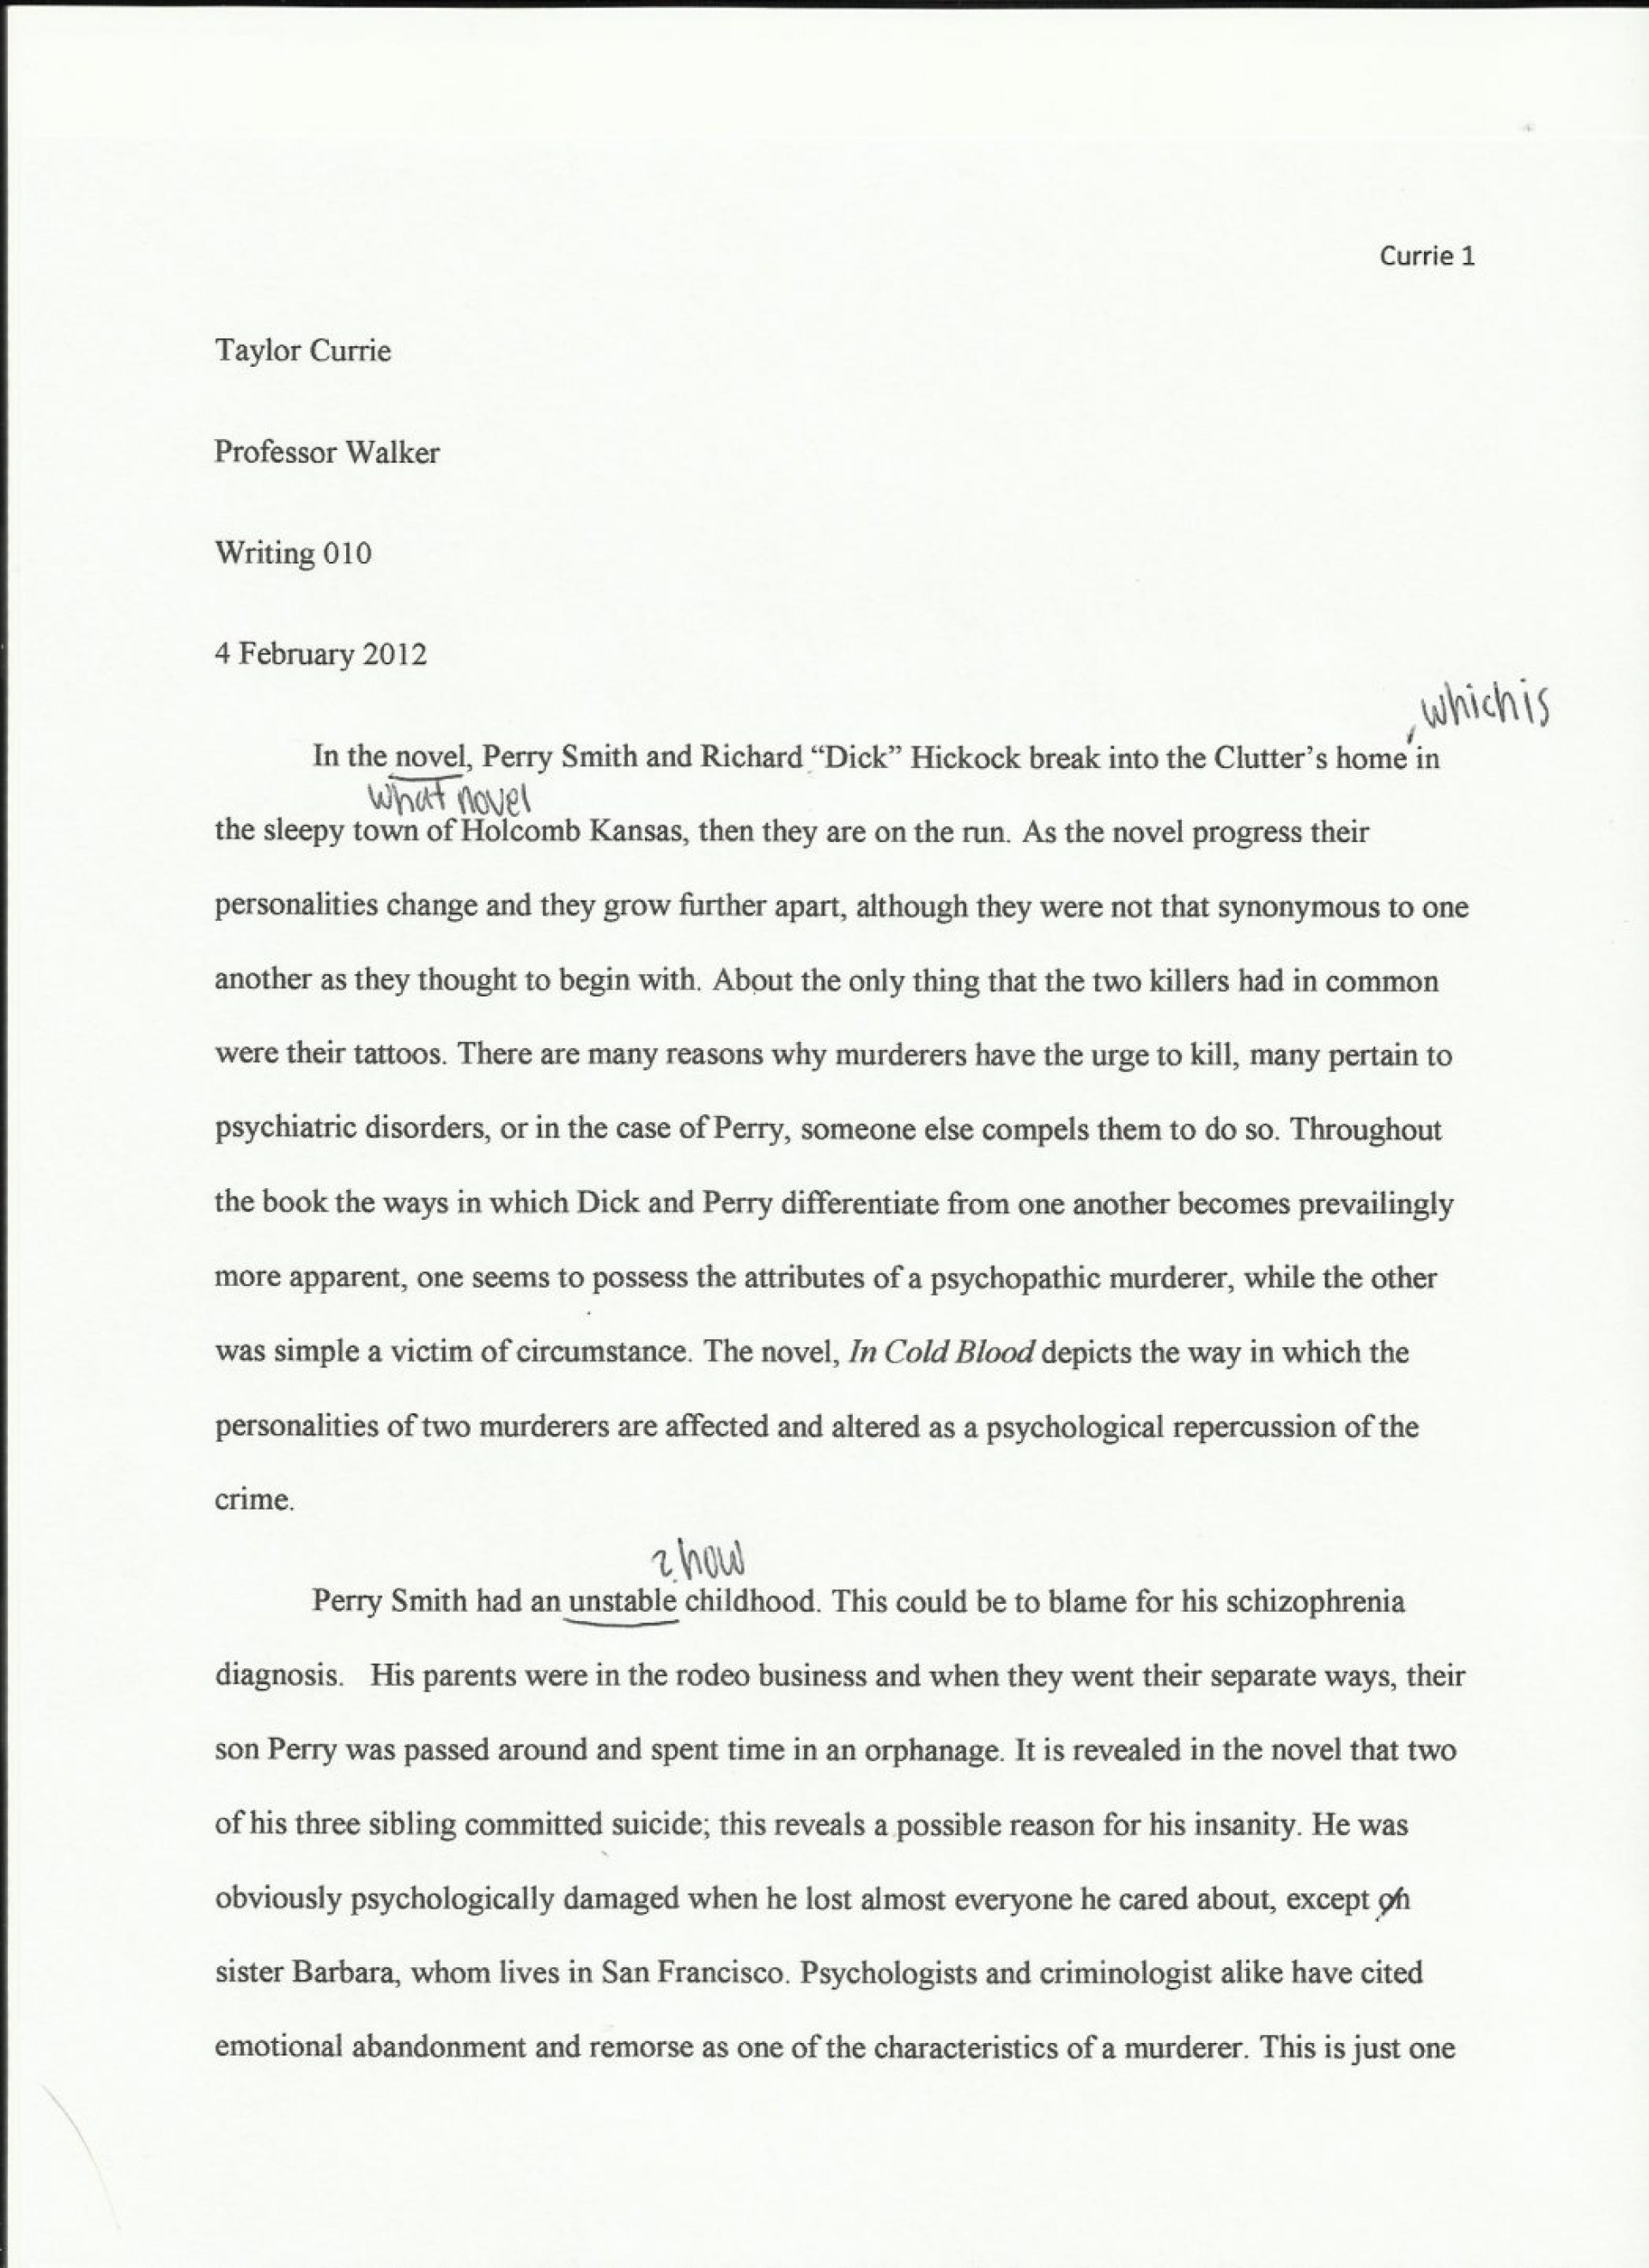 002 Essay On Decision Making In Cold Blood Essays Simple Writing Topics With Answers Draft 1048x1441 Singular And Our Body Hindi Titles Donation Camp School 1920